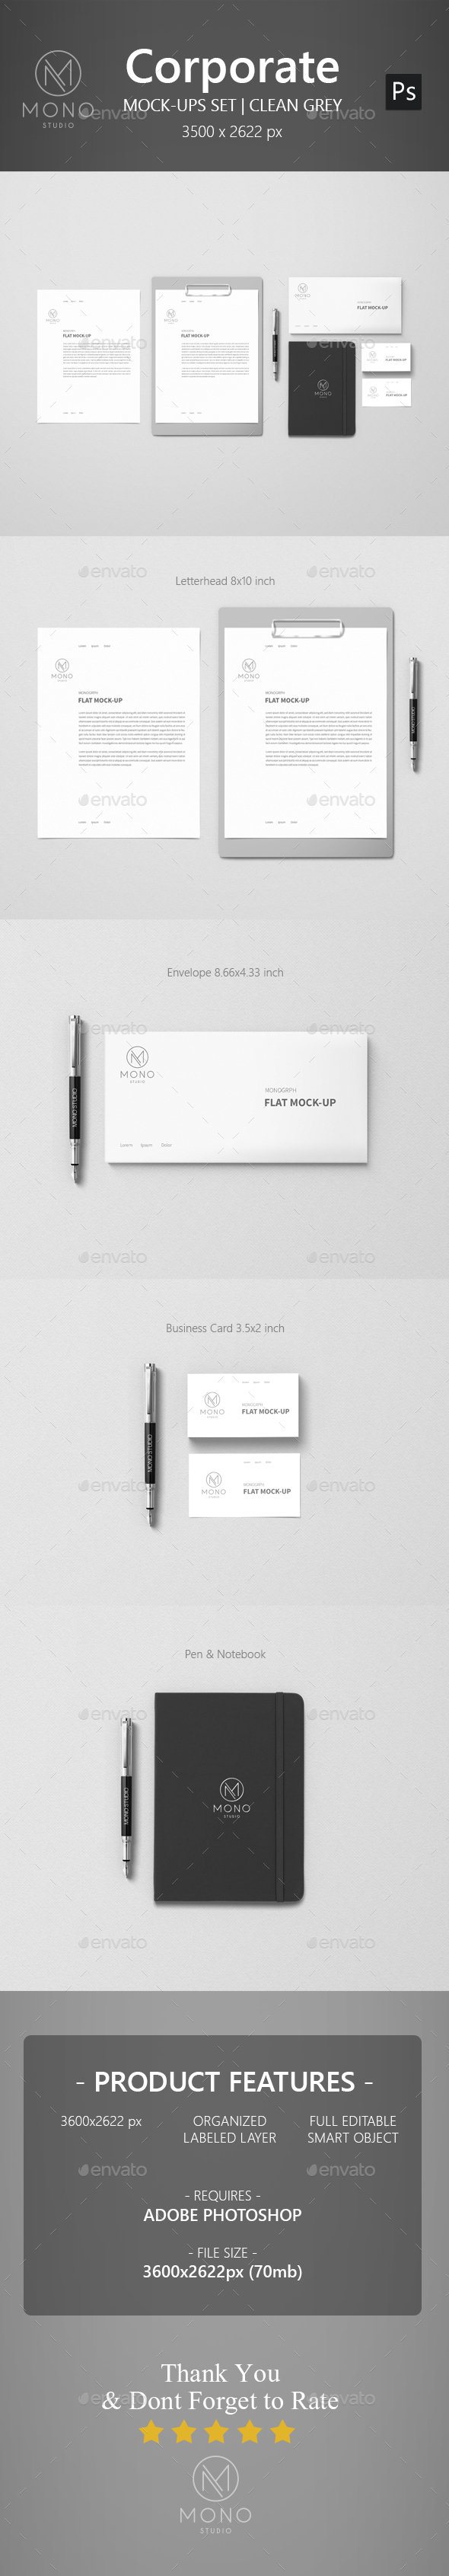 Corporate Mockup - Clean Grey (Stationery)